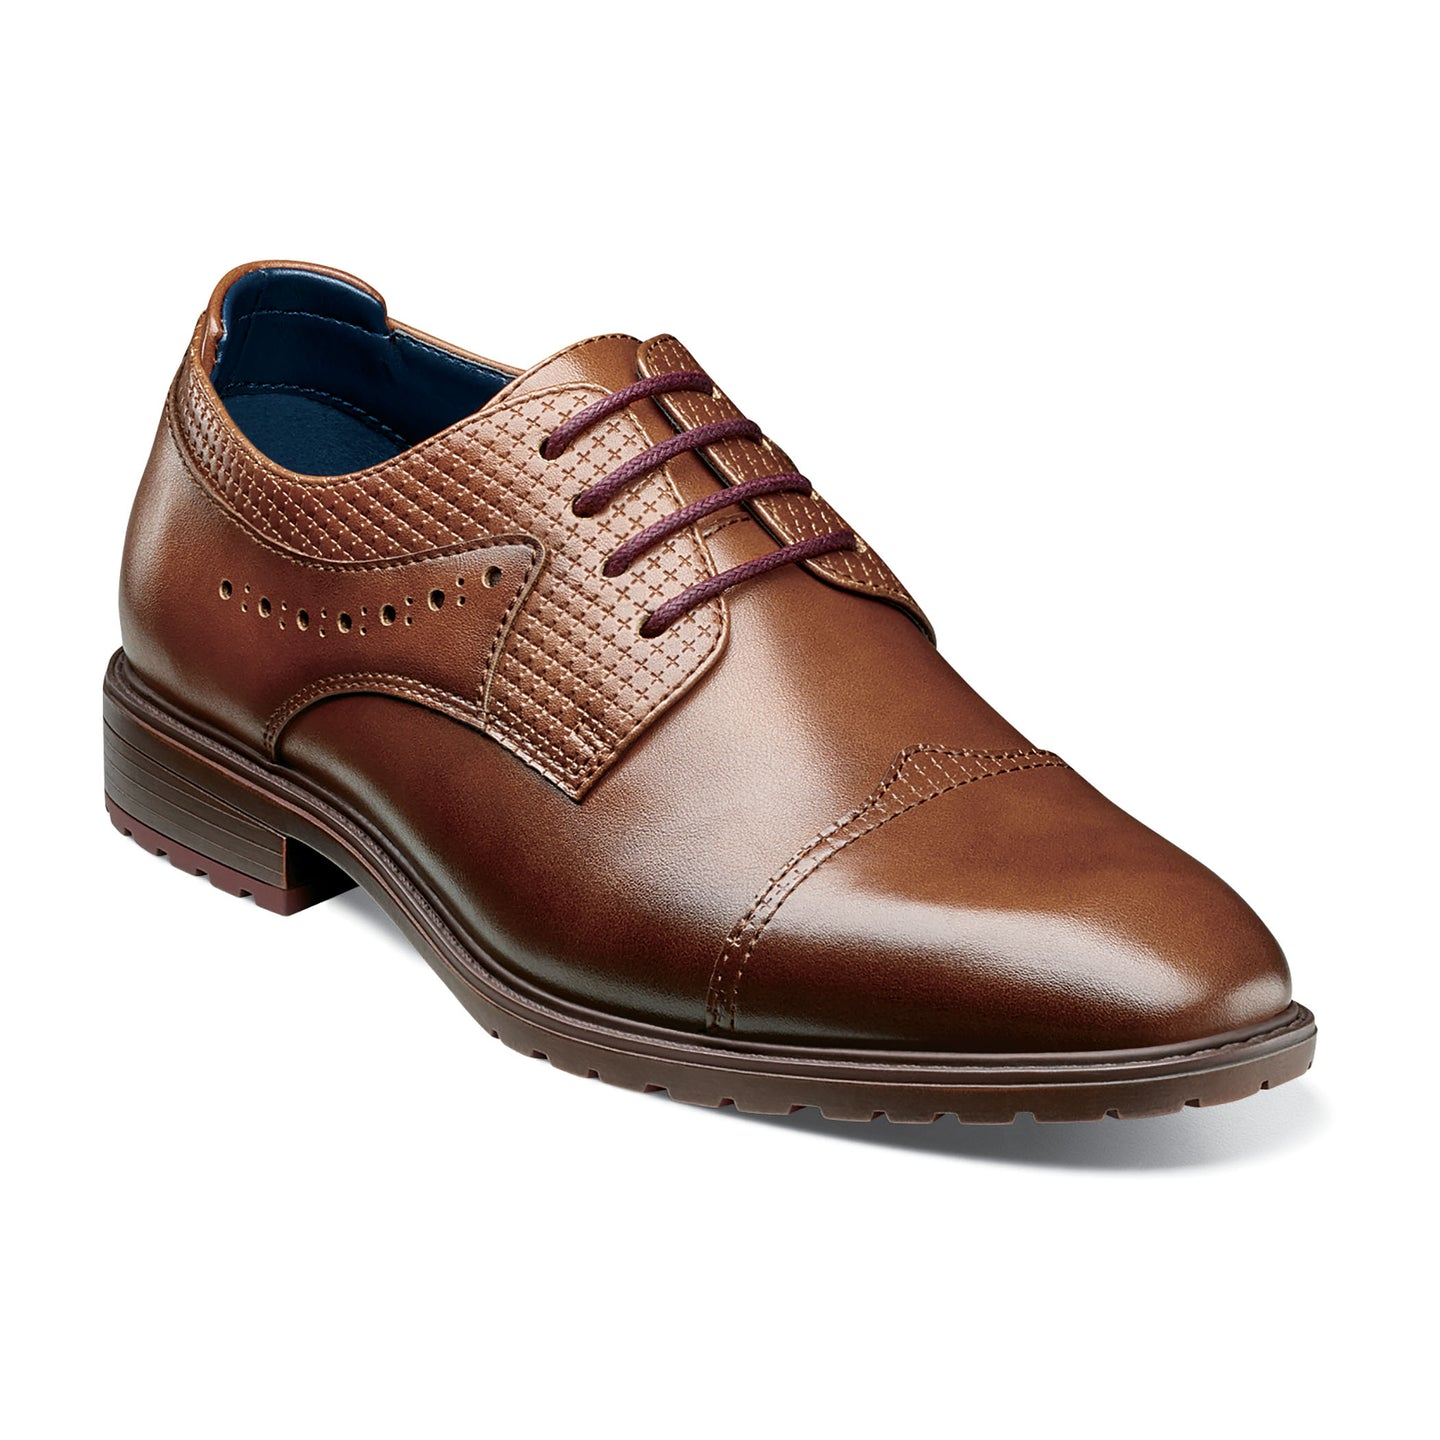 BOYS Raiden Cap Toe Oxford (Available in Tan or Black)